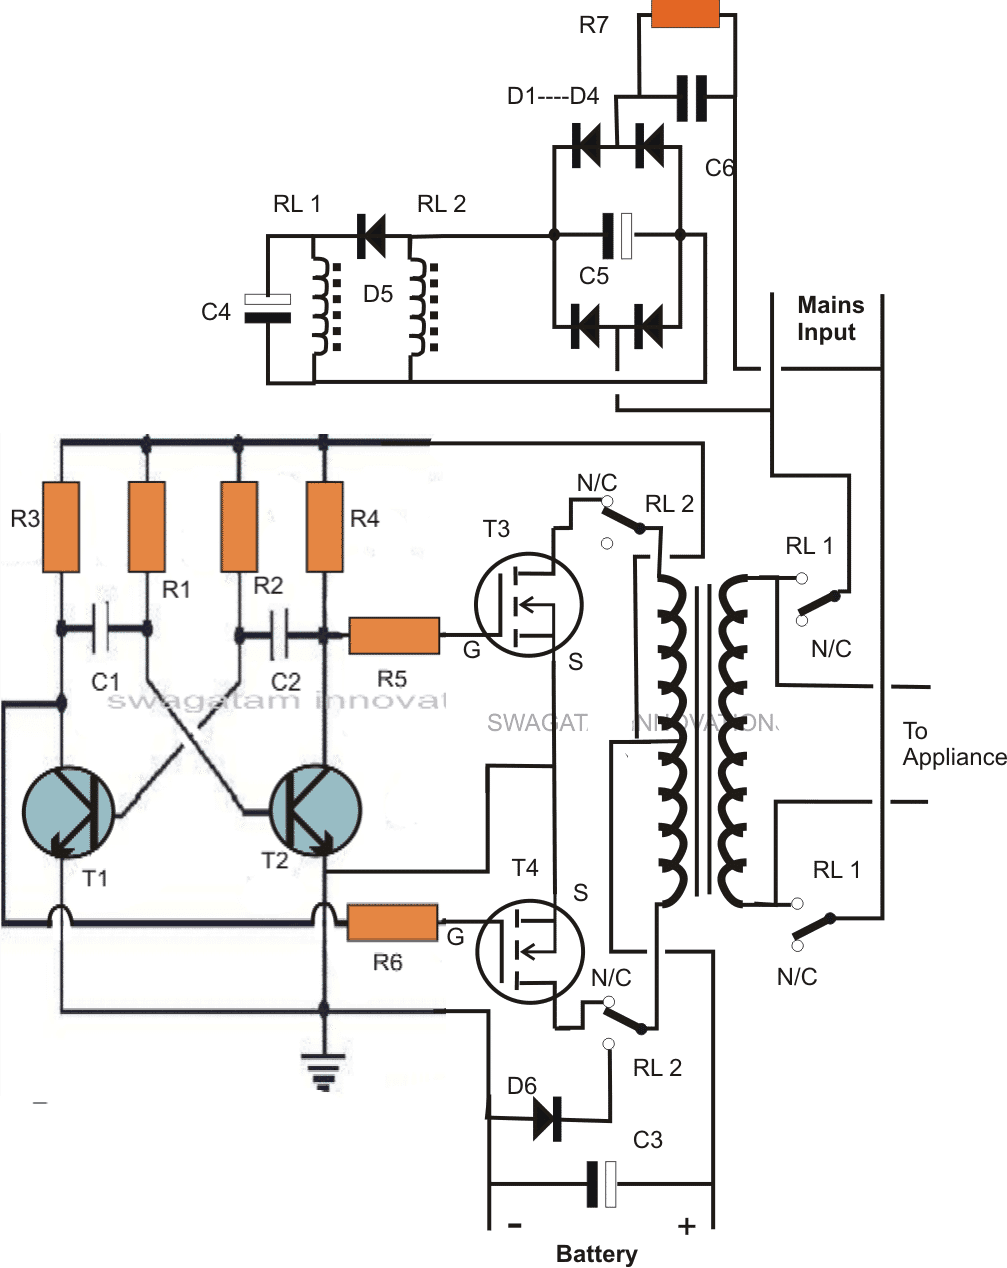 hight resolution of caution this circuit is definitely not recommended for the new hobbyists it s suitable only for the experts if you are a novice and interested to try